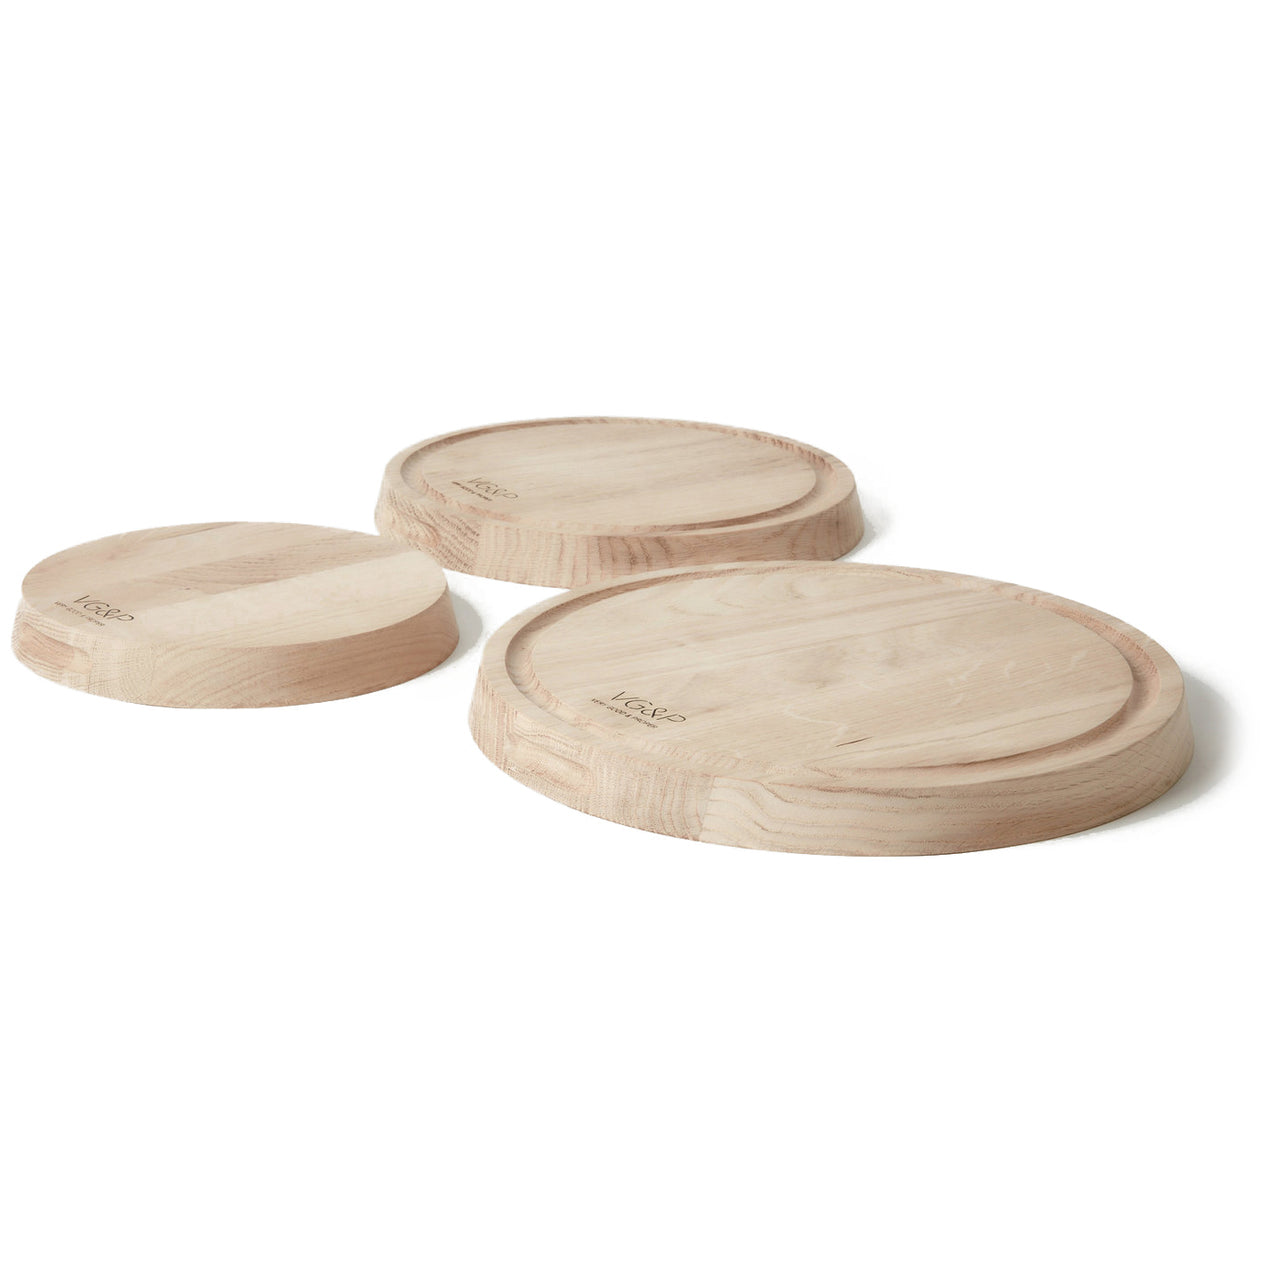 VG&P Circular Serving Boards